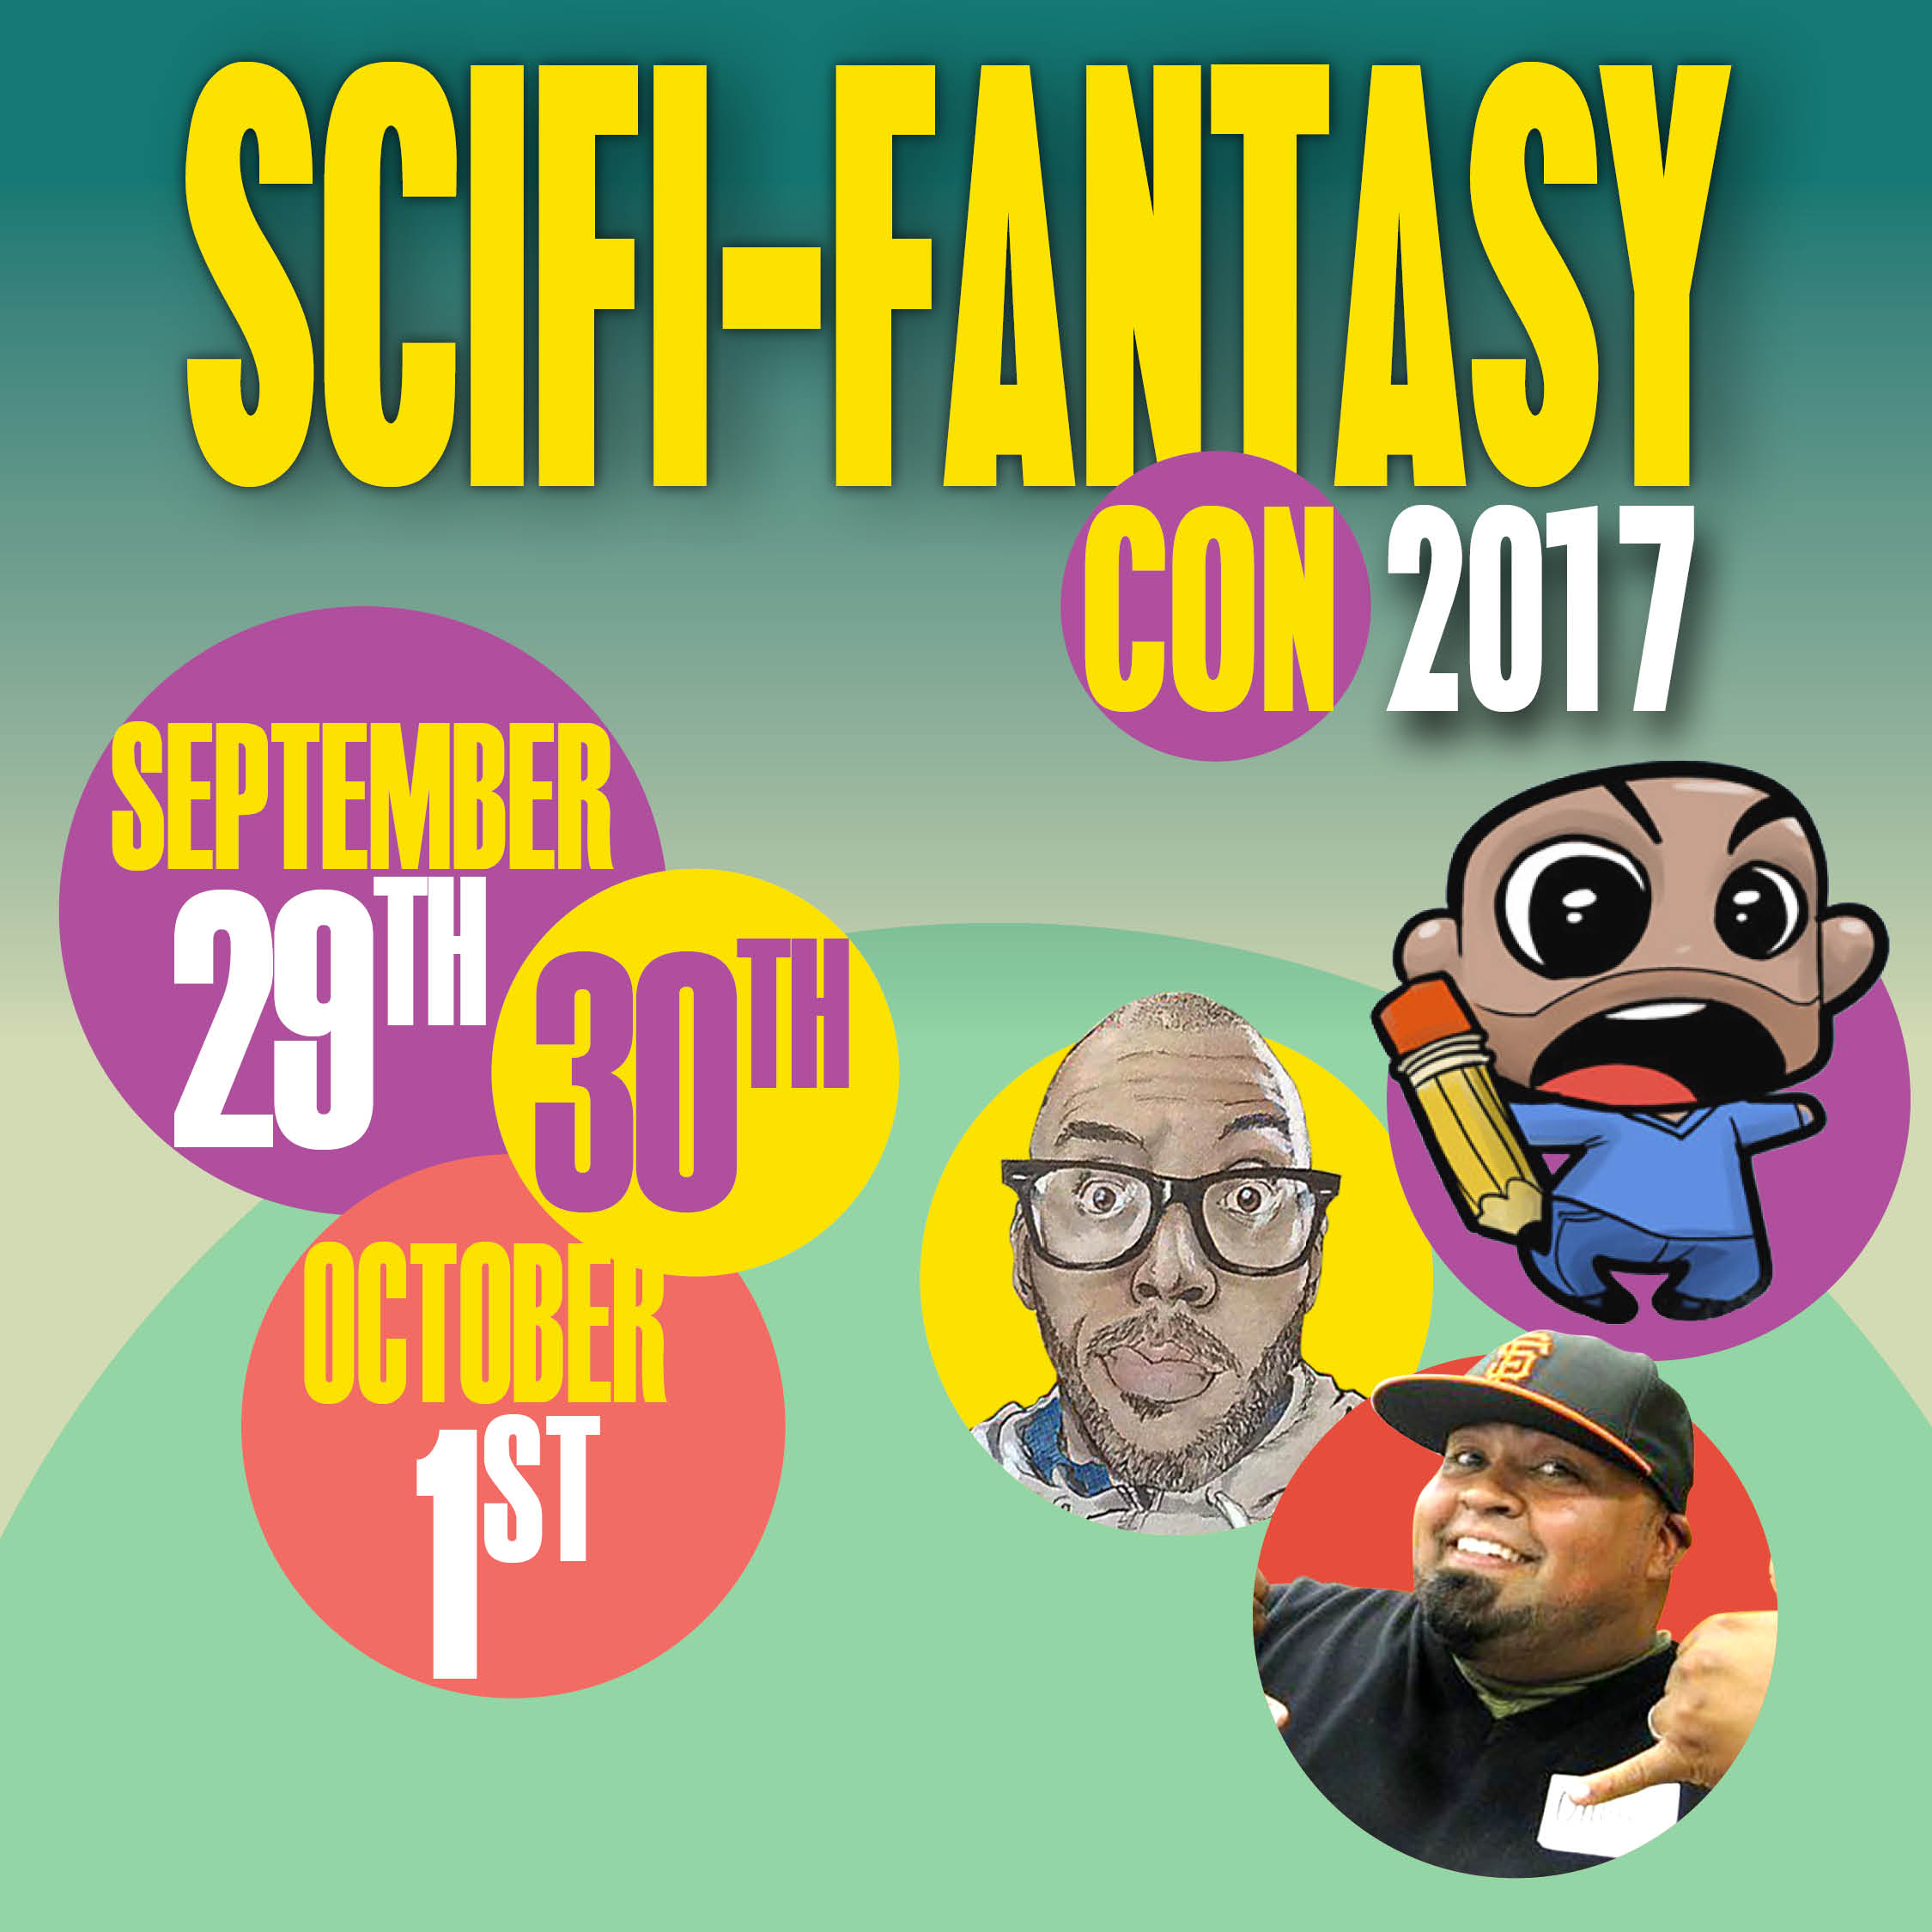 Scifi-Fantasy Con - This weekend, the Turlock Toon Skwad will be at the Hard Rock Cafe Hotel for the SciFi-Fantasy Comic Con. If you happen to be in the area, pass by our tables and say hello. Hope to see you there.